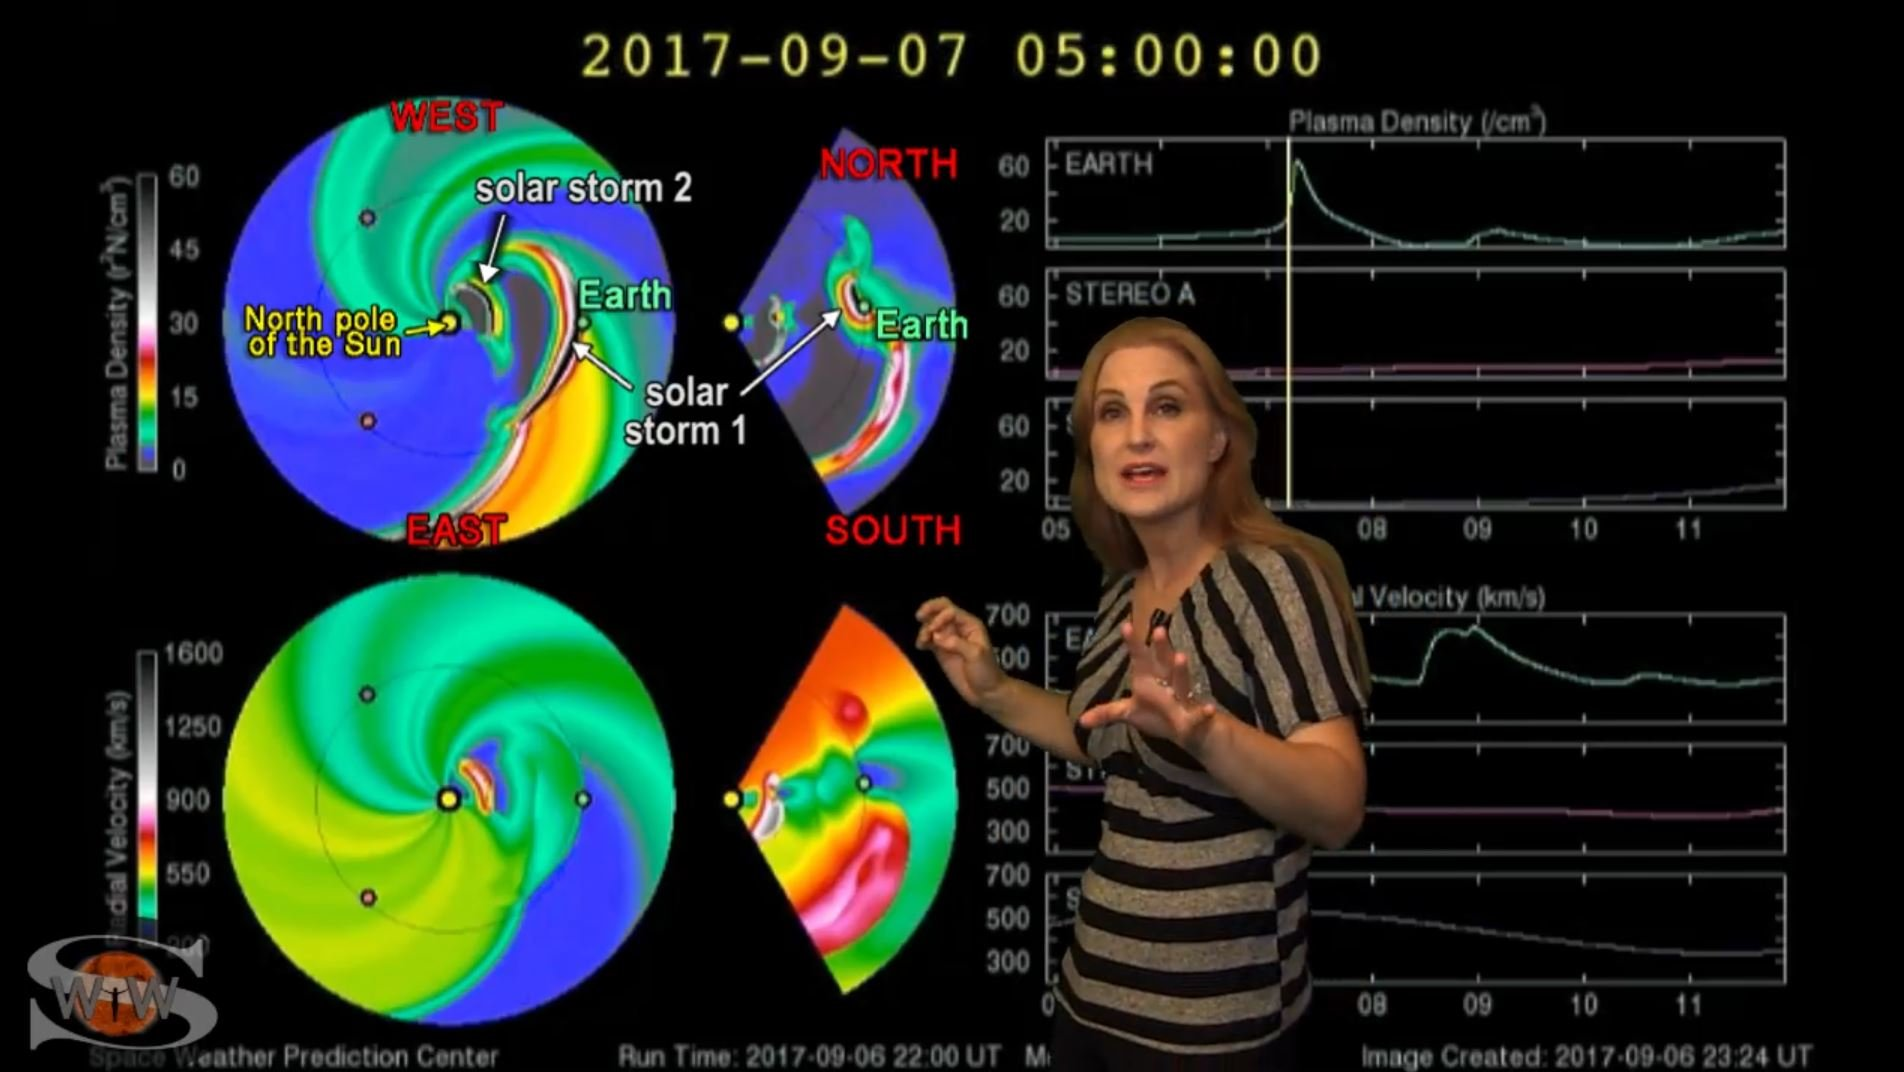 Space weather affects your daily life. It's time to start paying attention.